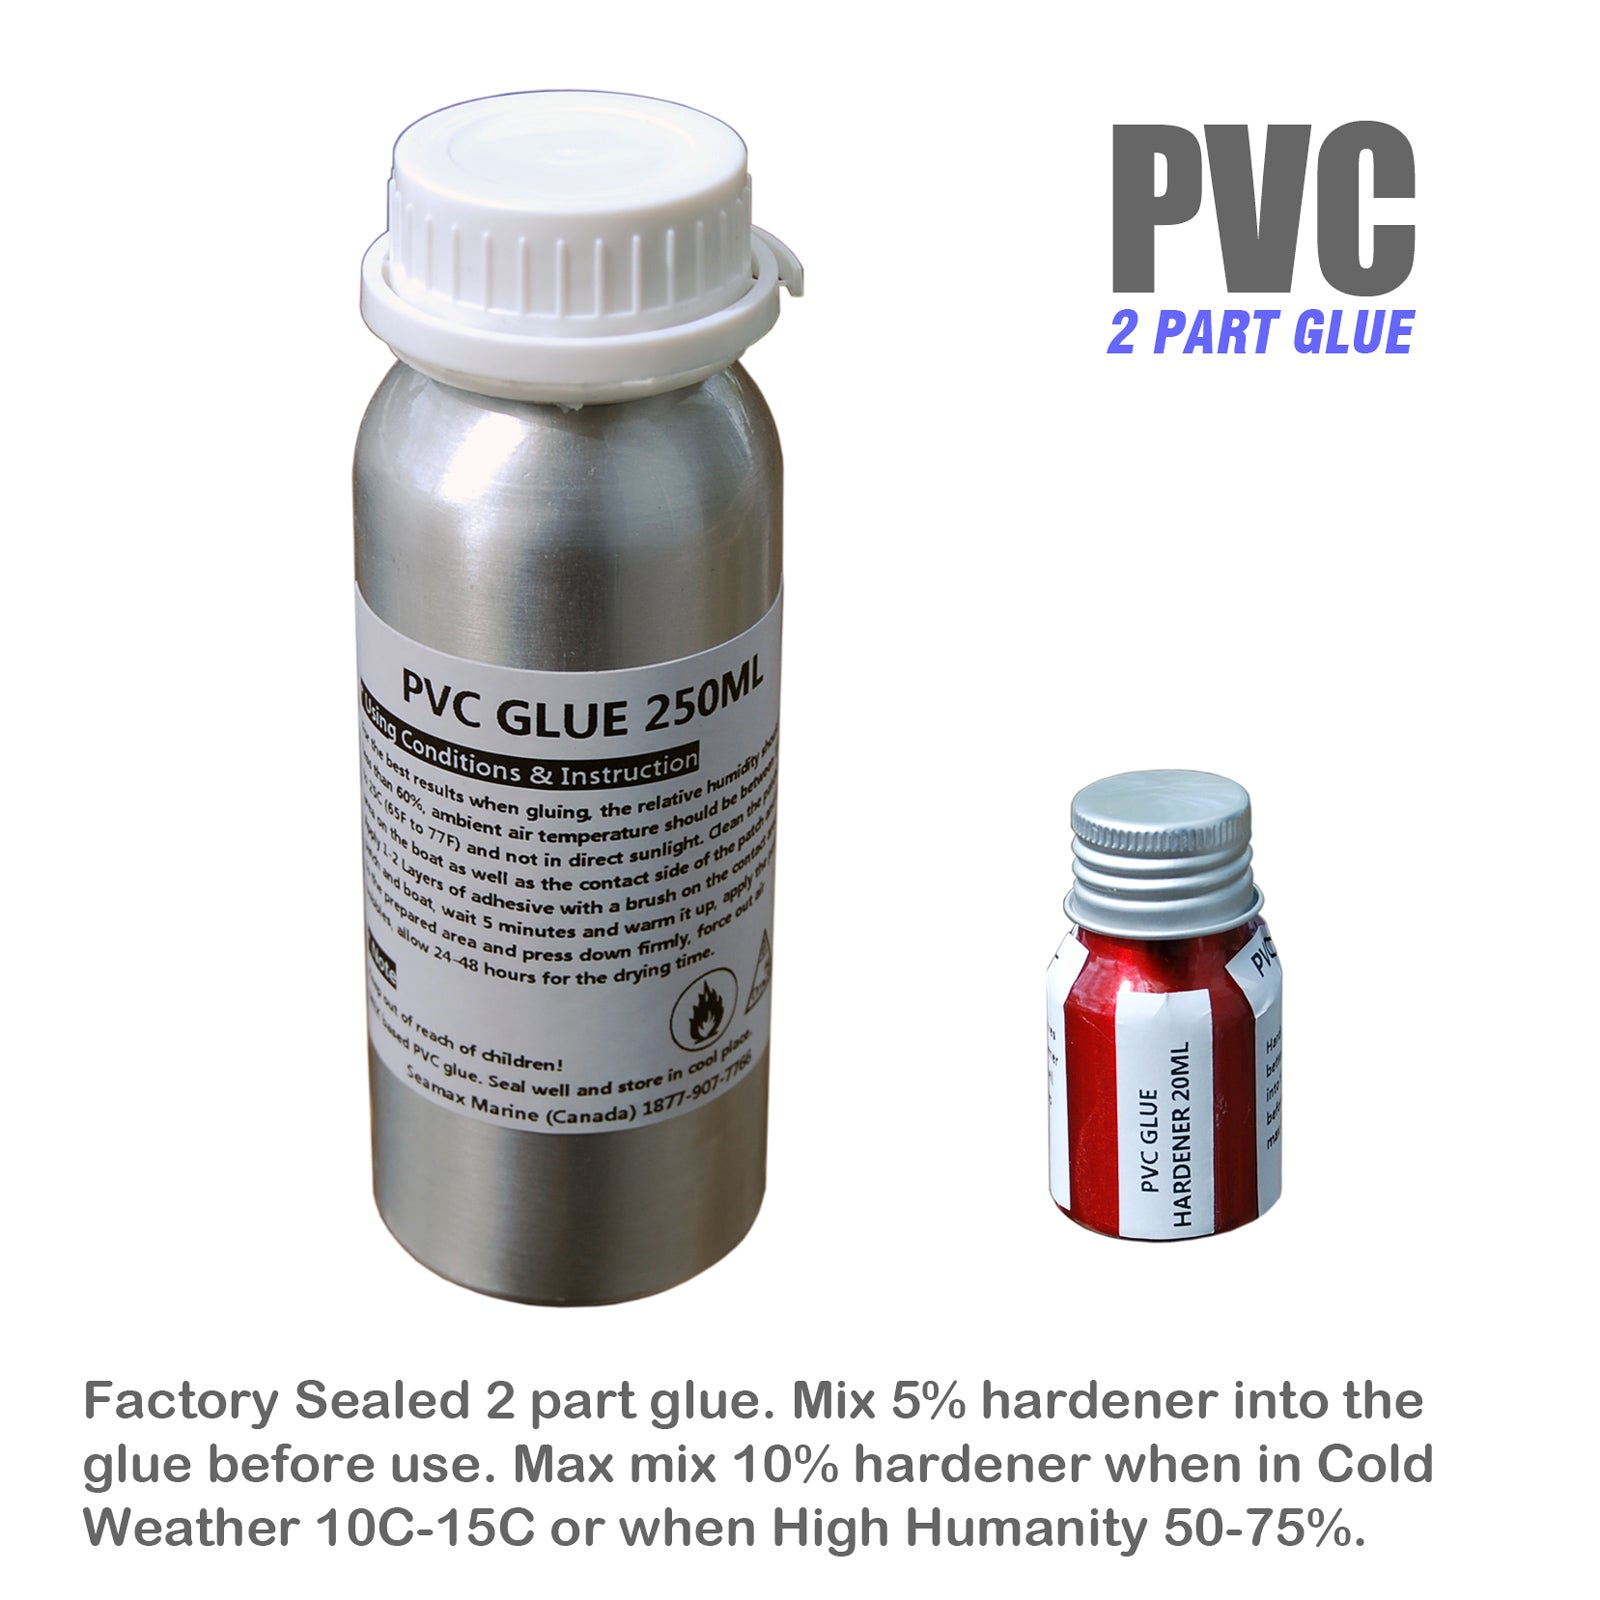 Marine Grade 250ml + 30ml 2 Parts Adhesive Kit for Inflatable Boats, Sealed  in Aluminum Bottles  PVC or Hypalon 2 Version Available